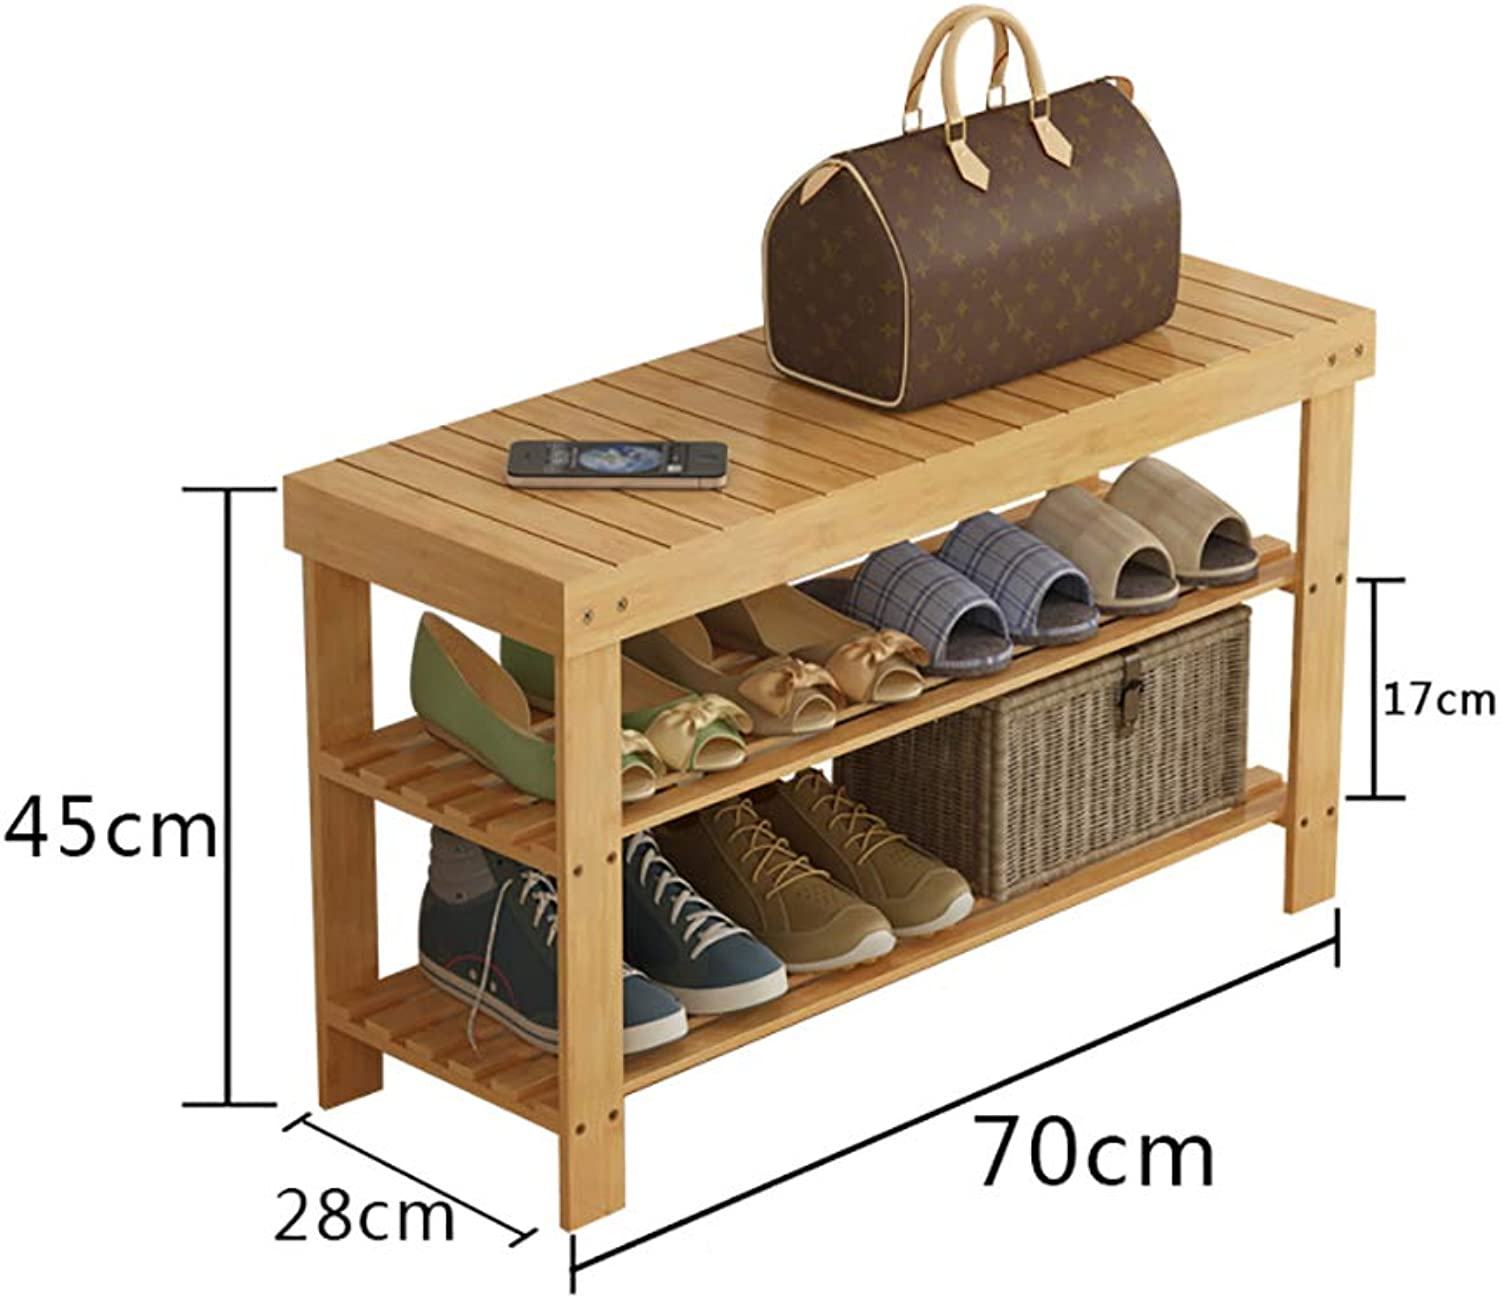 Entrance shoes Rack shoesbox Change shoes Bench Shelf Storage Shelf Multifunction 2 Layer Household Dorm Room Space Saving Doorway Bamboo (color   A, Size   70  28  45CM)